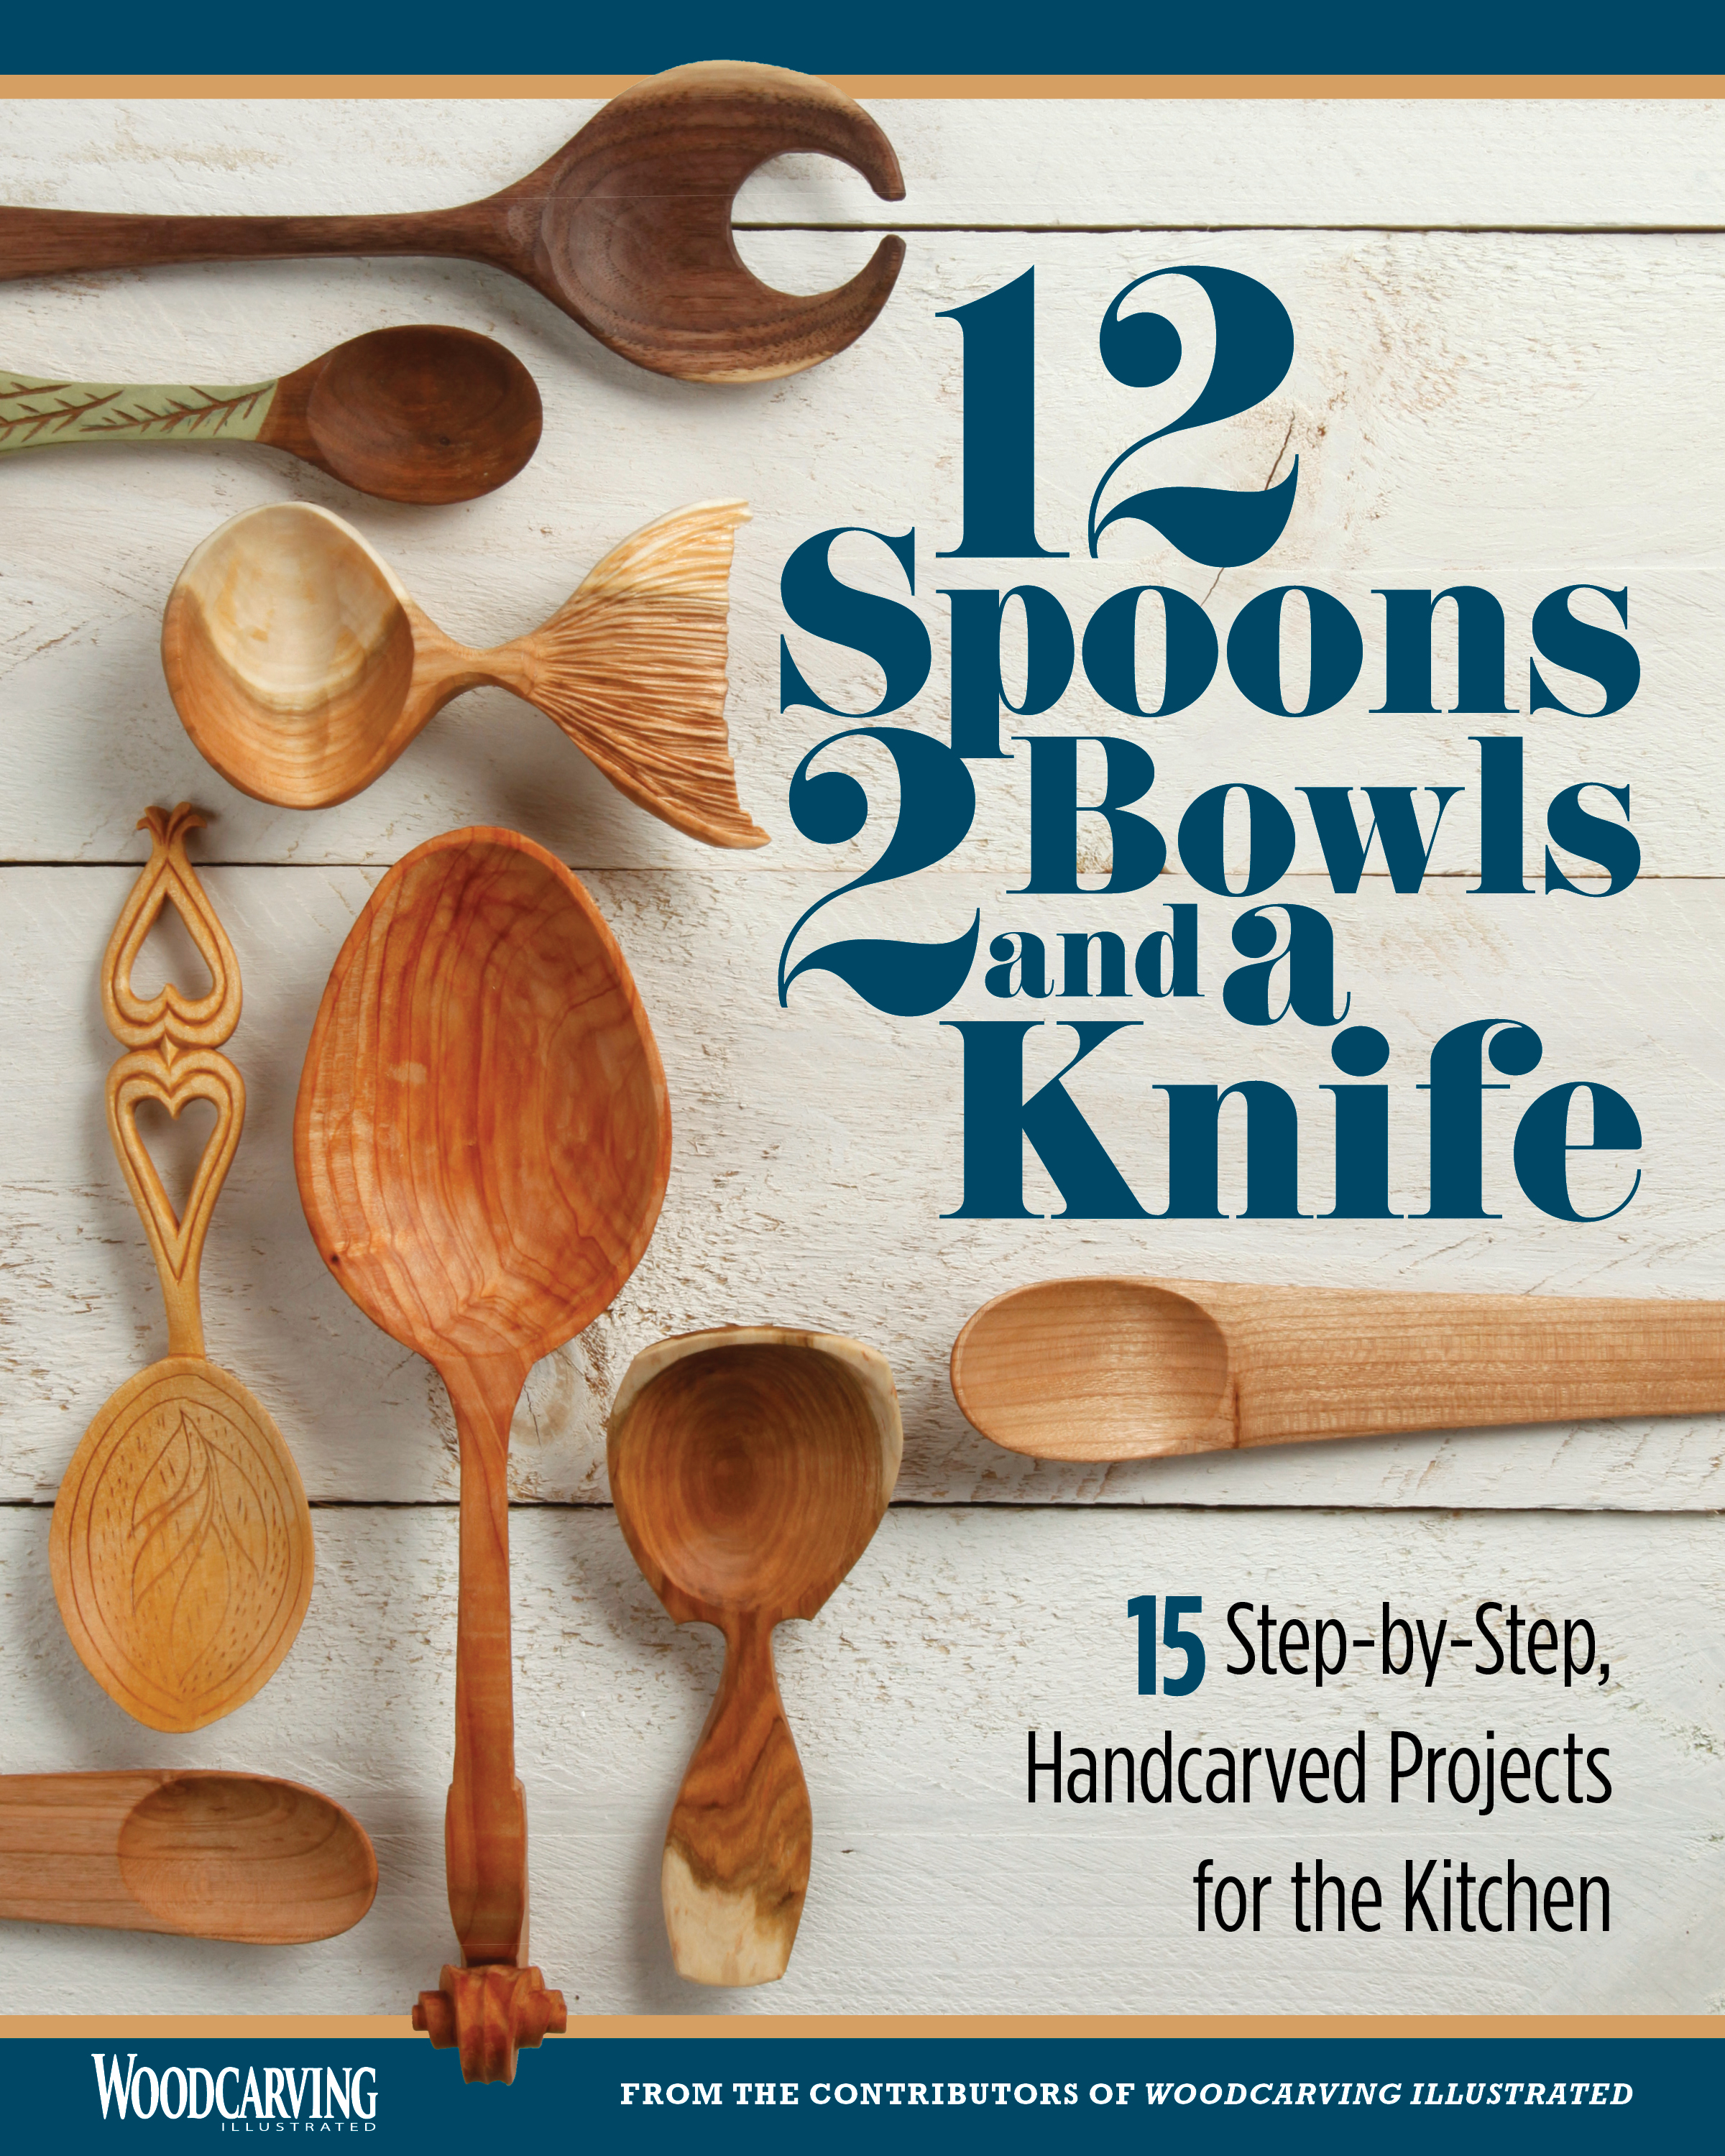 12 Spoons, 2 Bowls, and a Knife